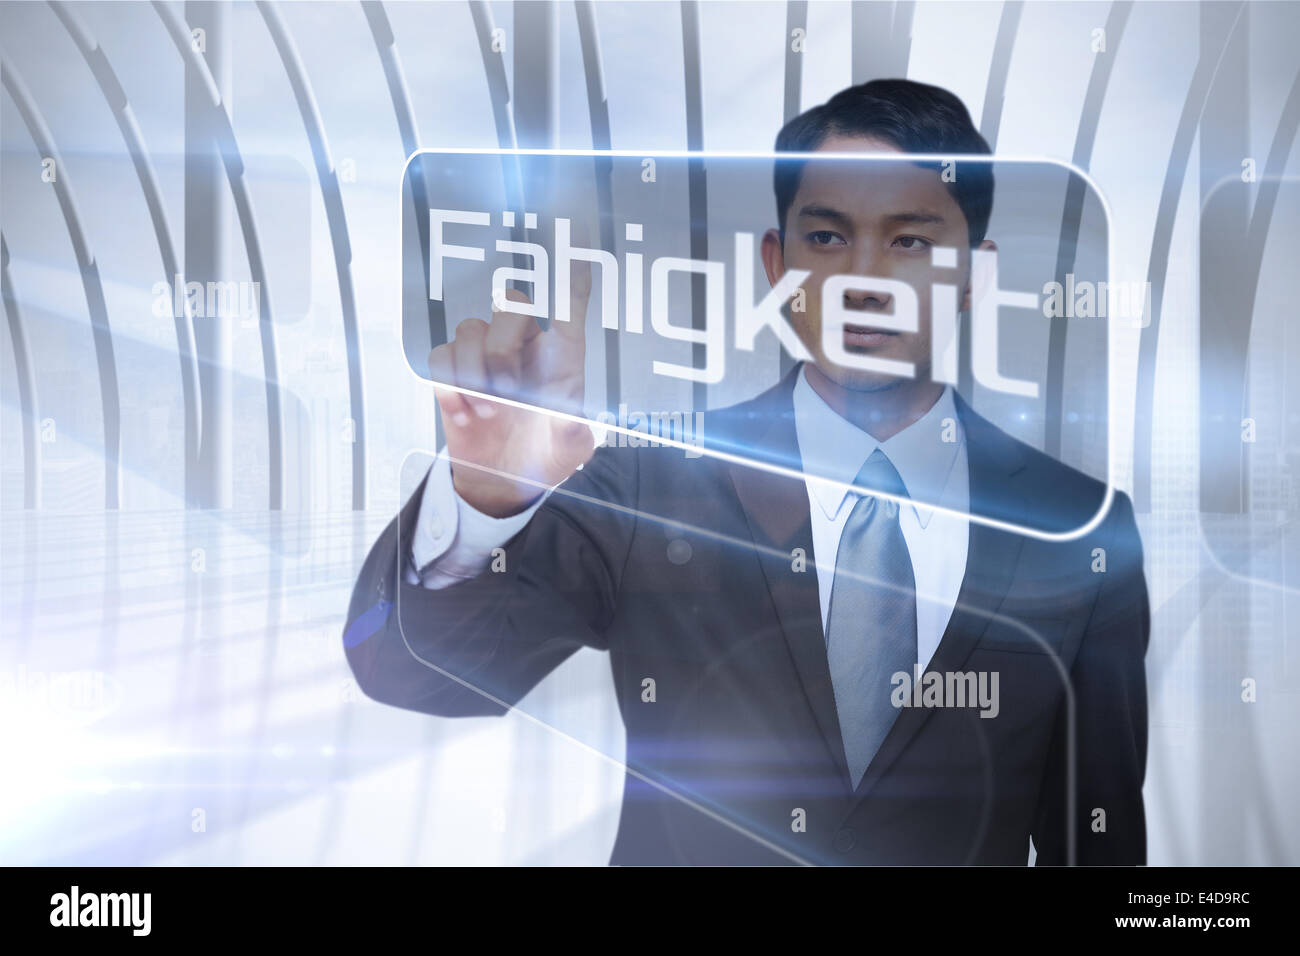 Businessman presenting the word ability in german Stock Photo